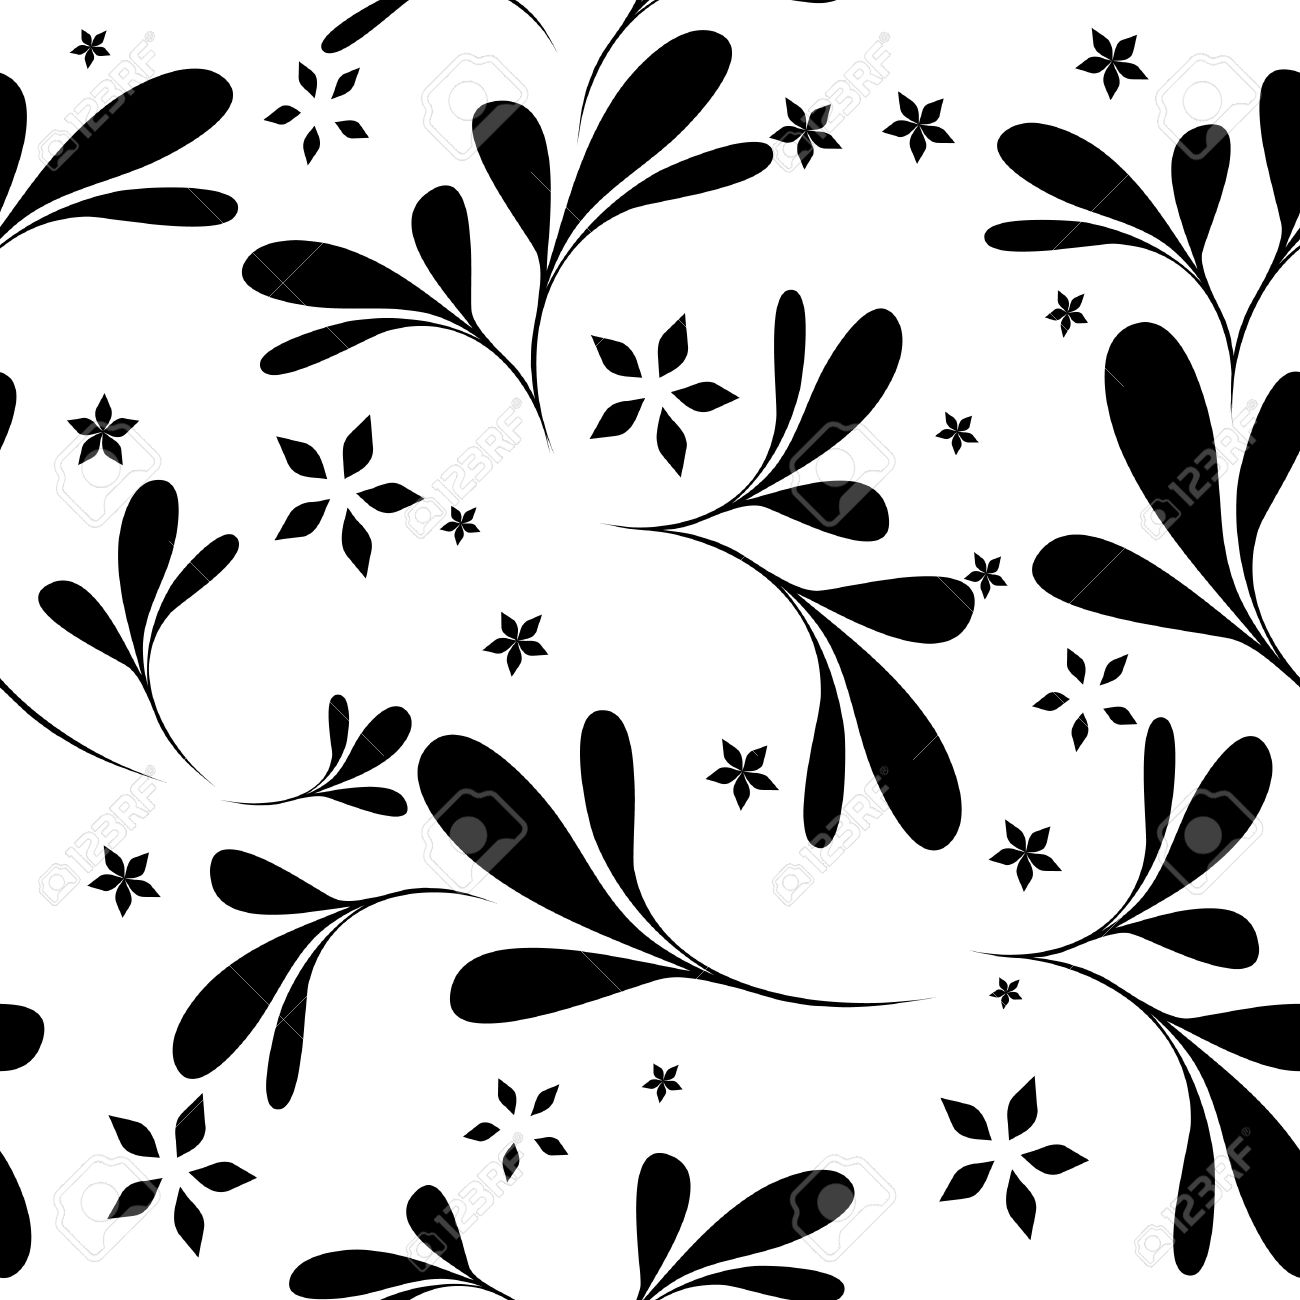 Black and white wallpaper clipart jpg library download Flowers In Black White wallpaper jpg library download